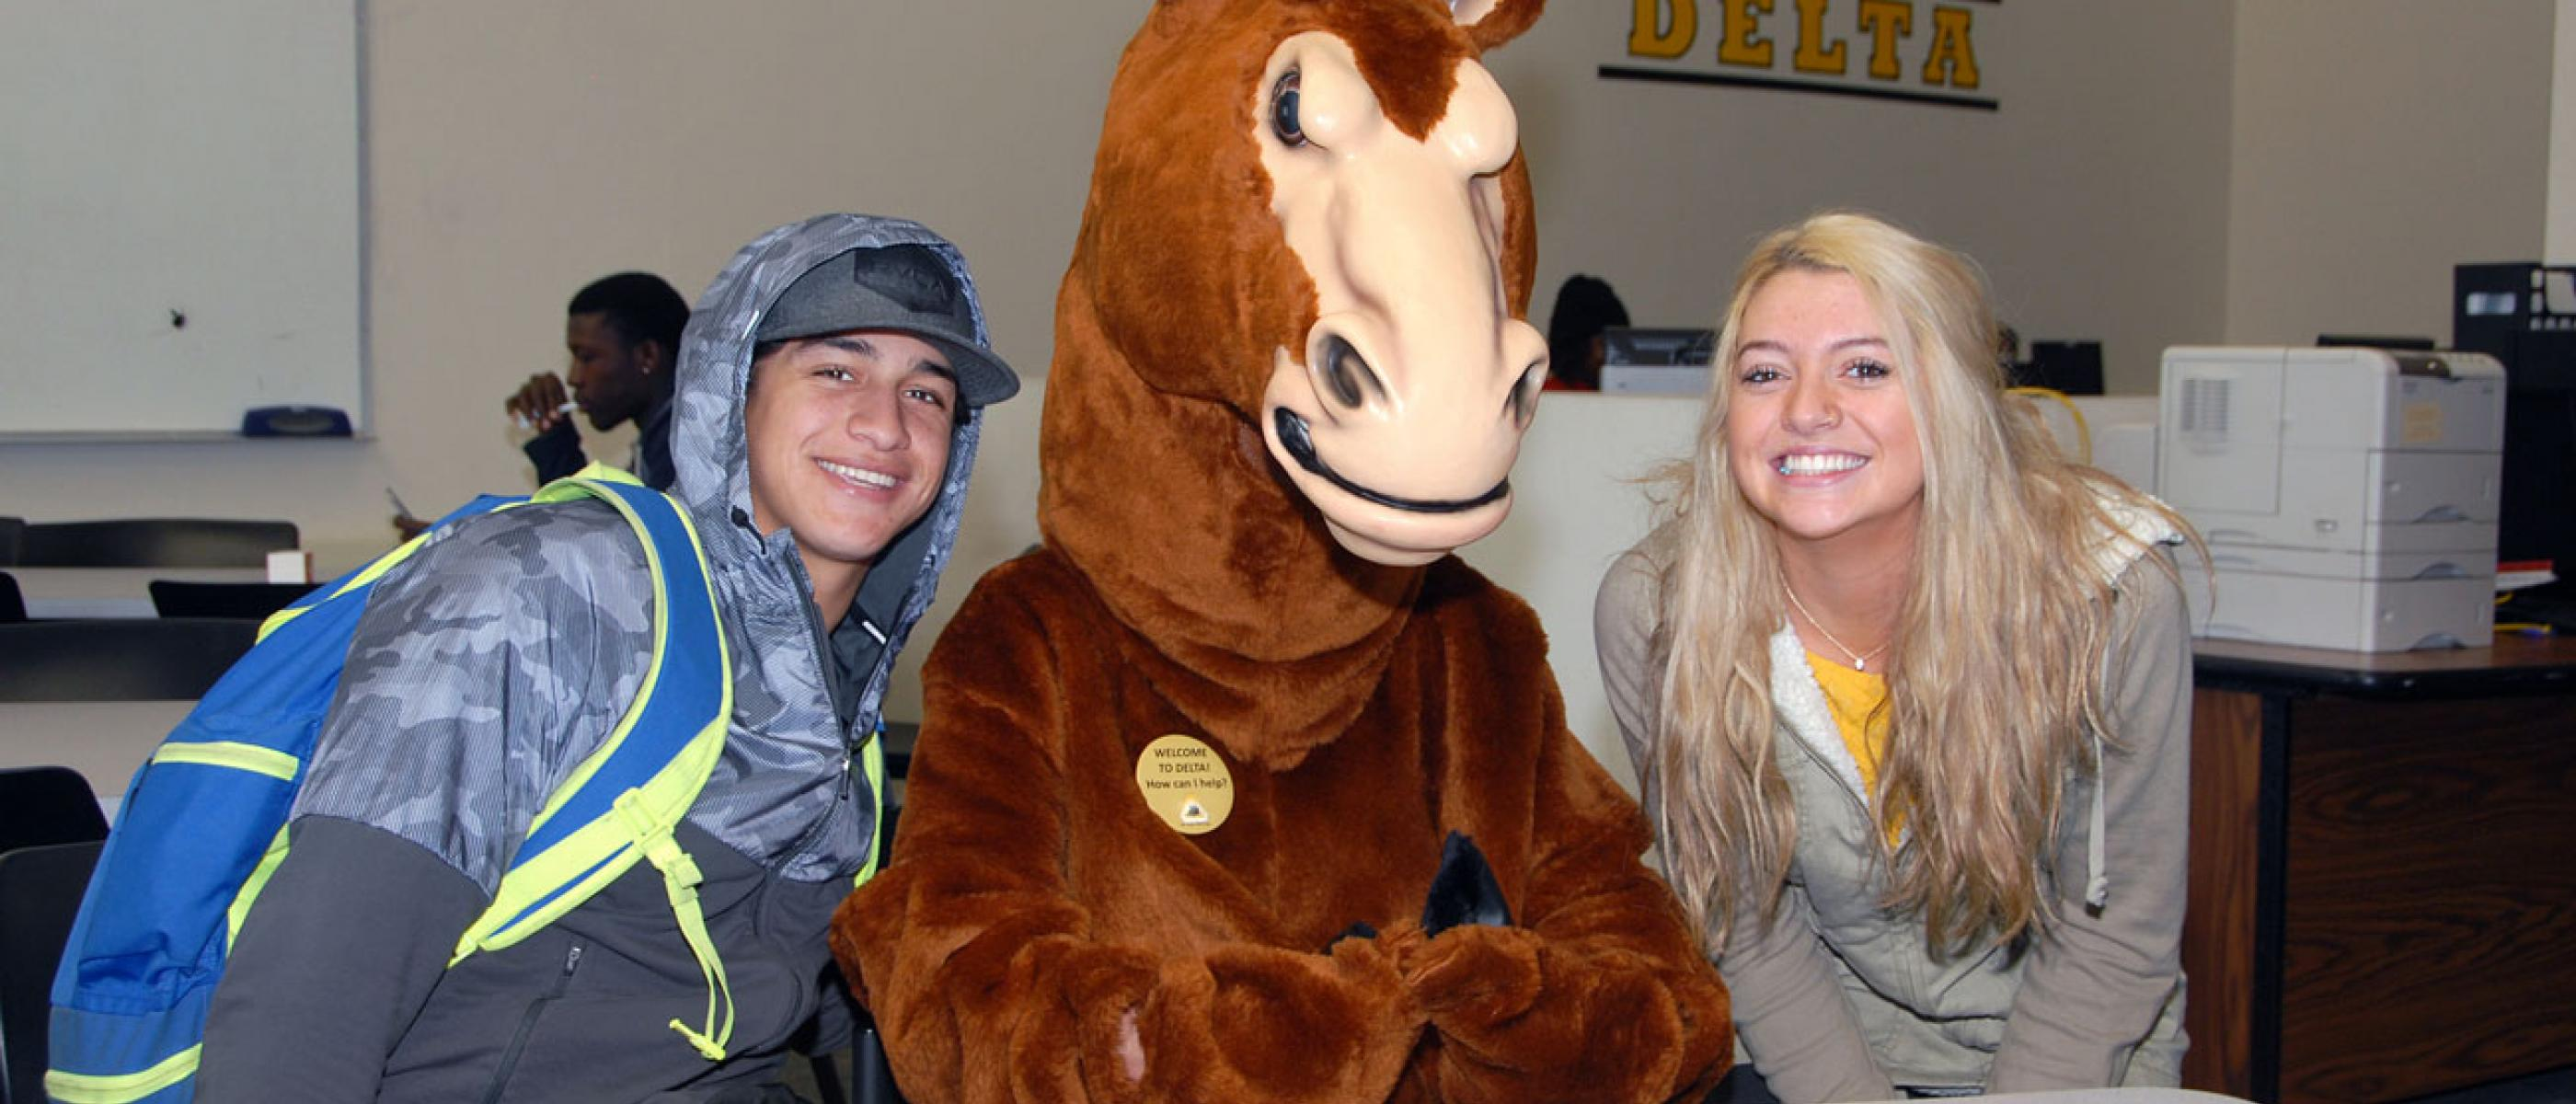 Students pose with the Delta mascot at the Zone